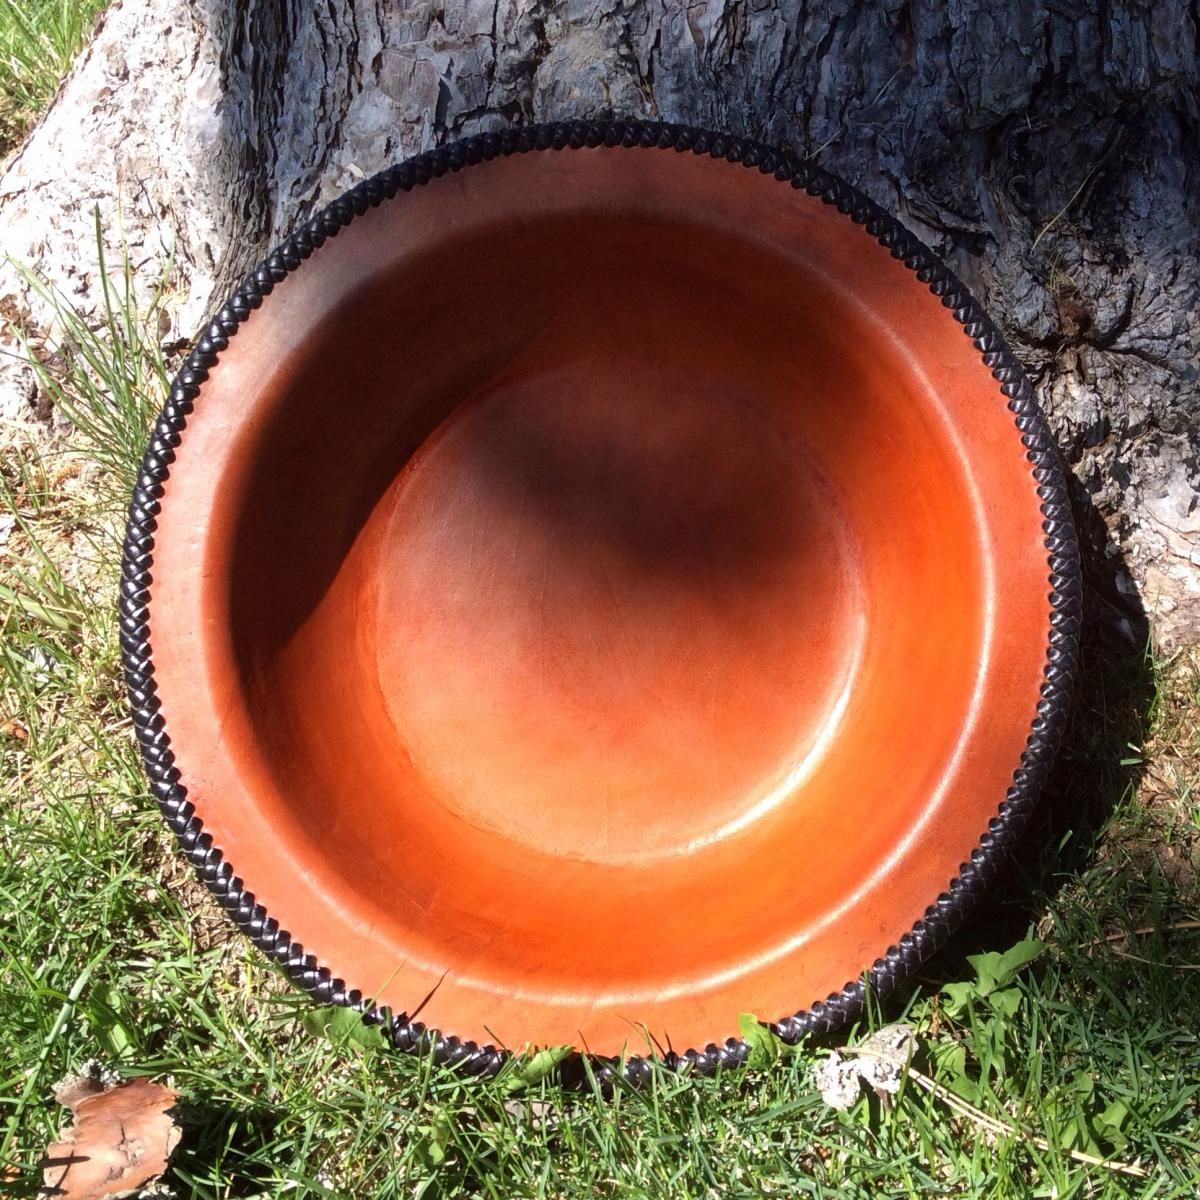 Molded Leather Bowls - Show Off!! - Leatherworker.net